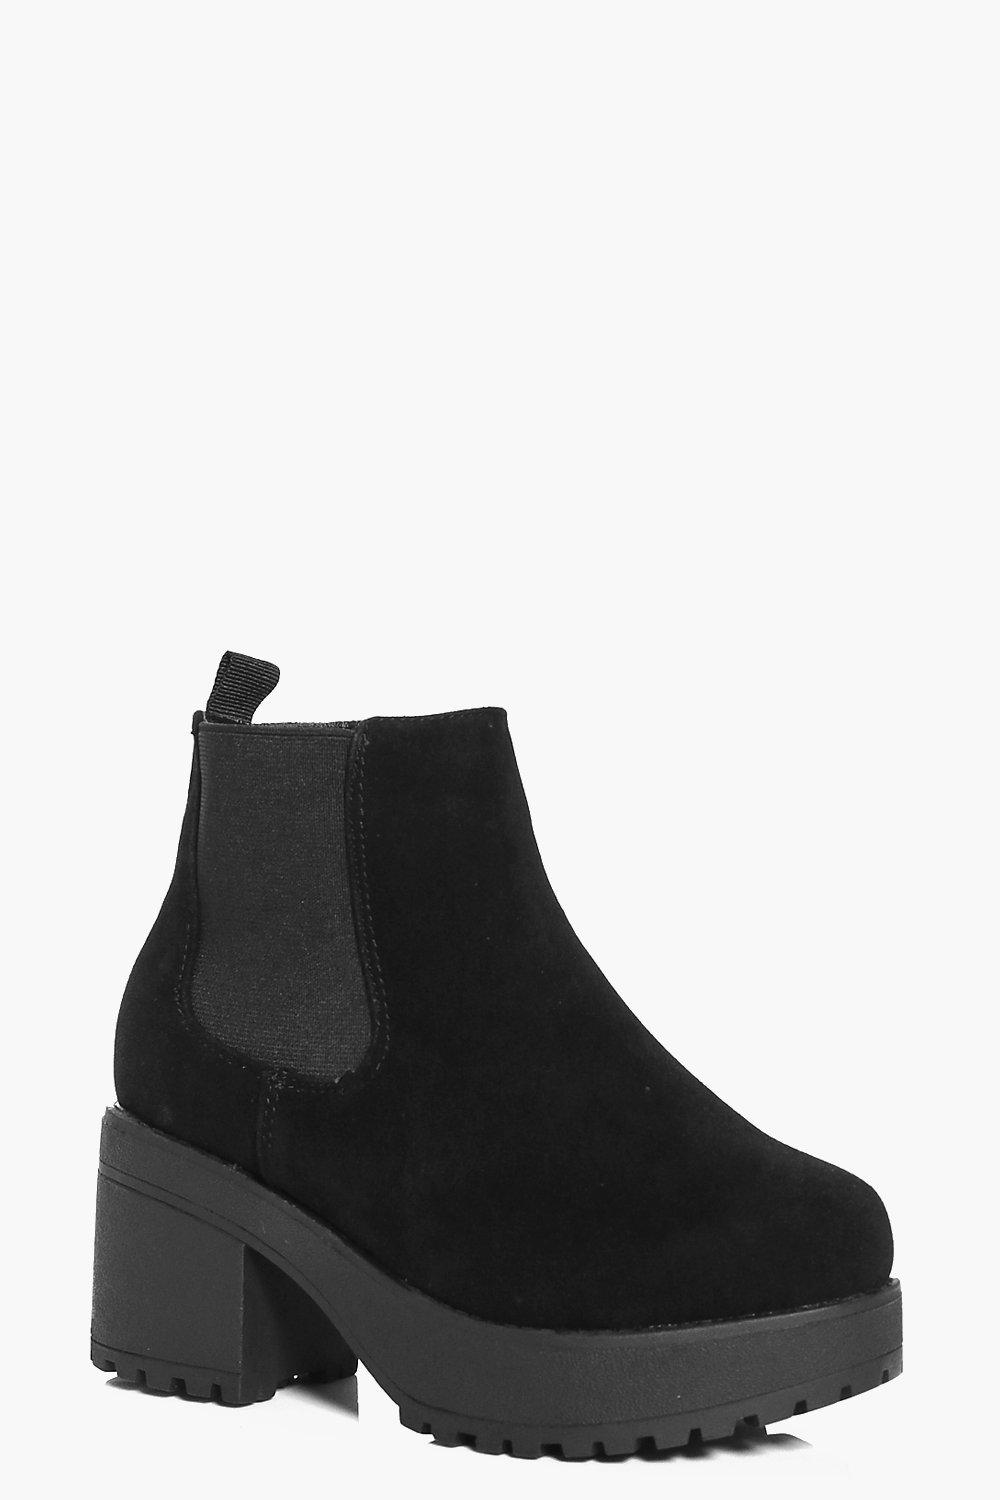 Girls Chunky Cleated Chelsea Boots